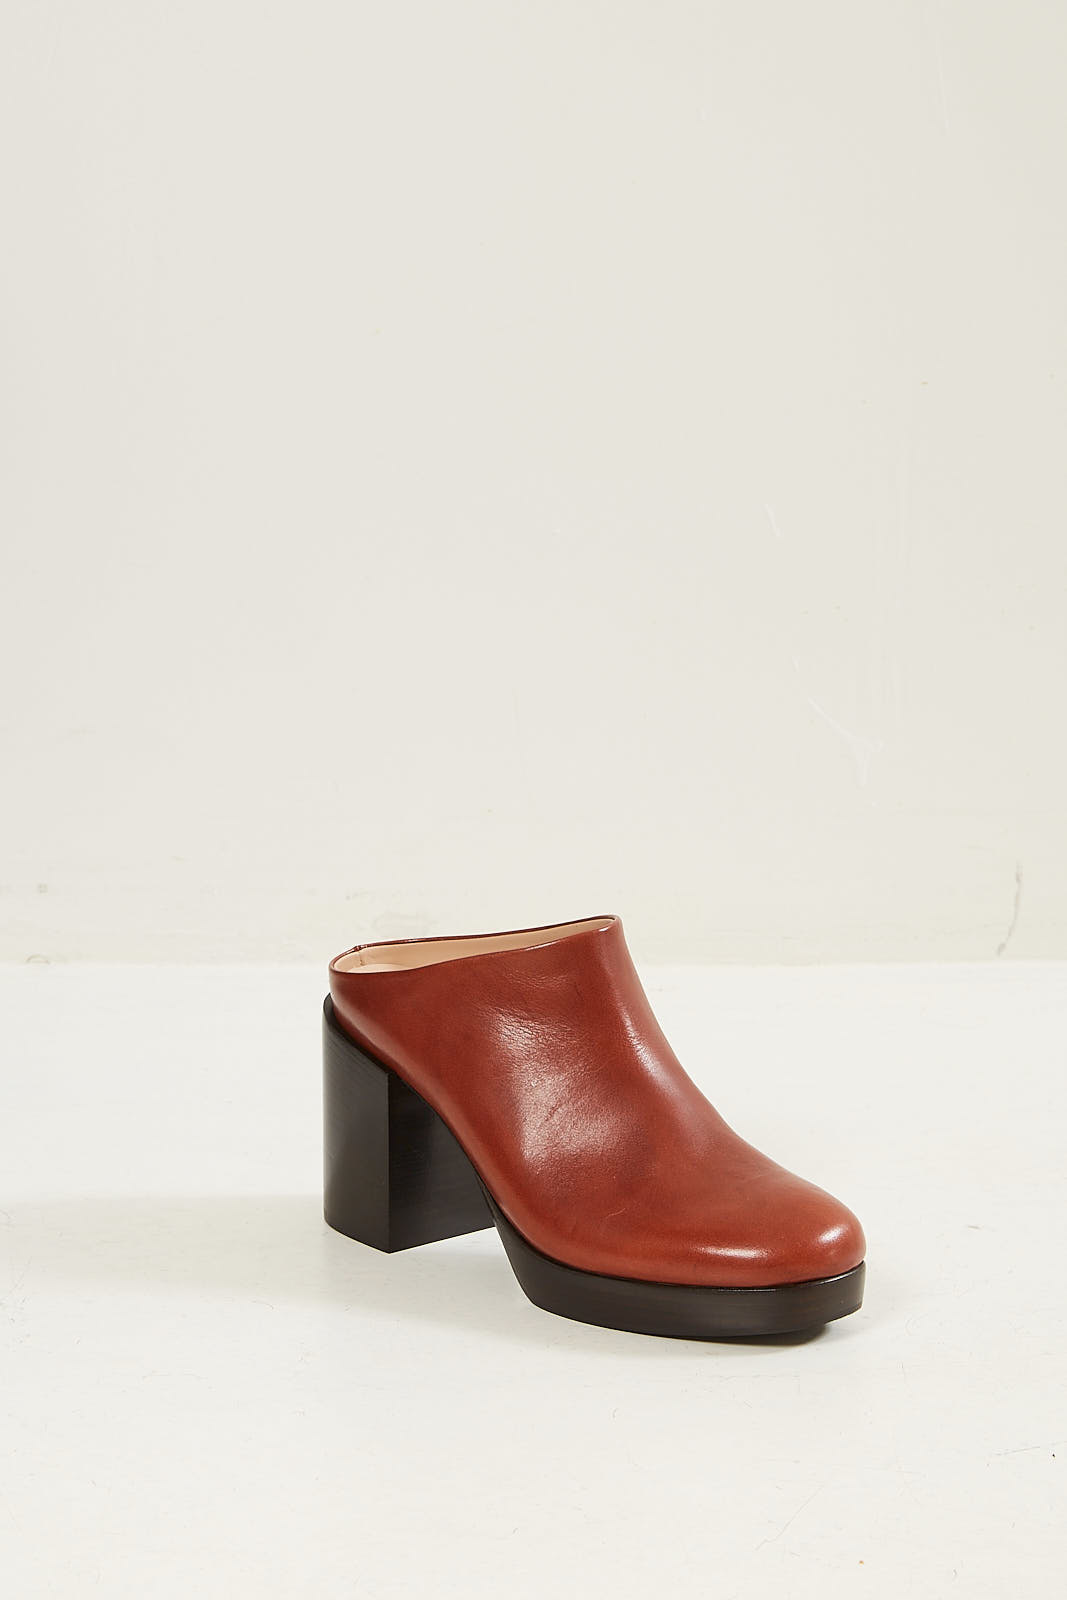 A.F. Vandevorst Leather mule cognac